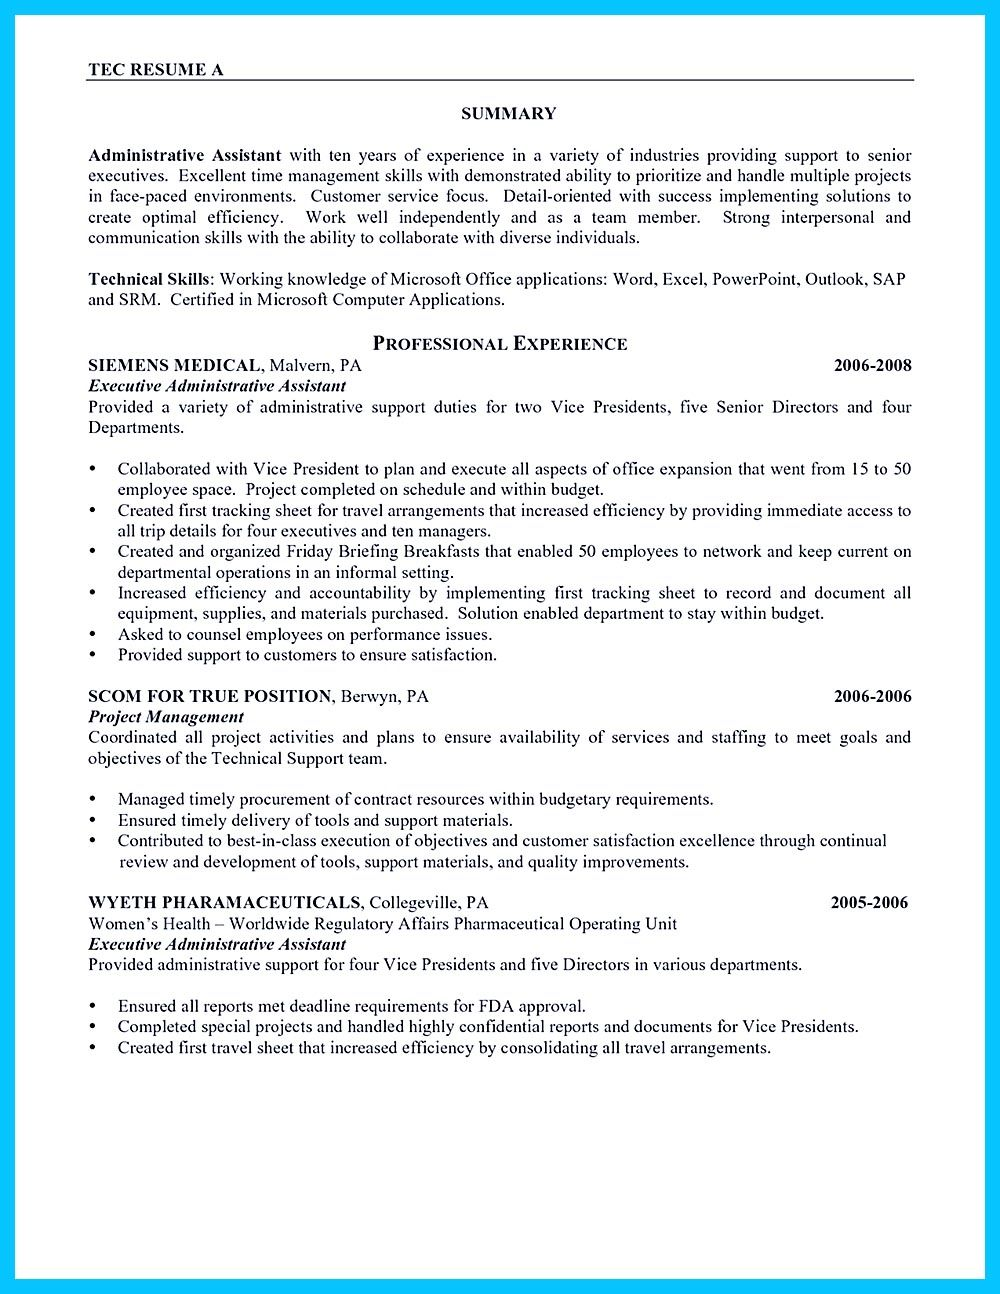 Samples Of Administrative Assistant Resumes Inspiration In Writing Entry Level Administrative Assistant Resume You Need To .